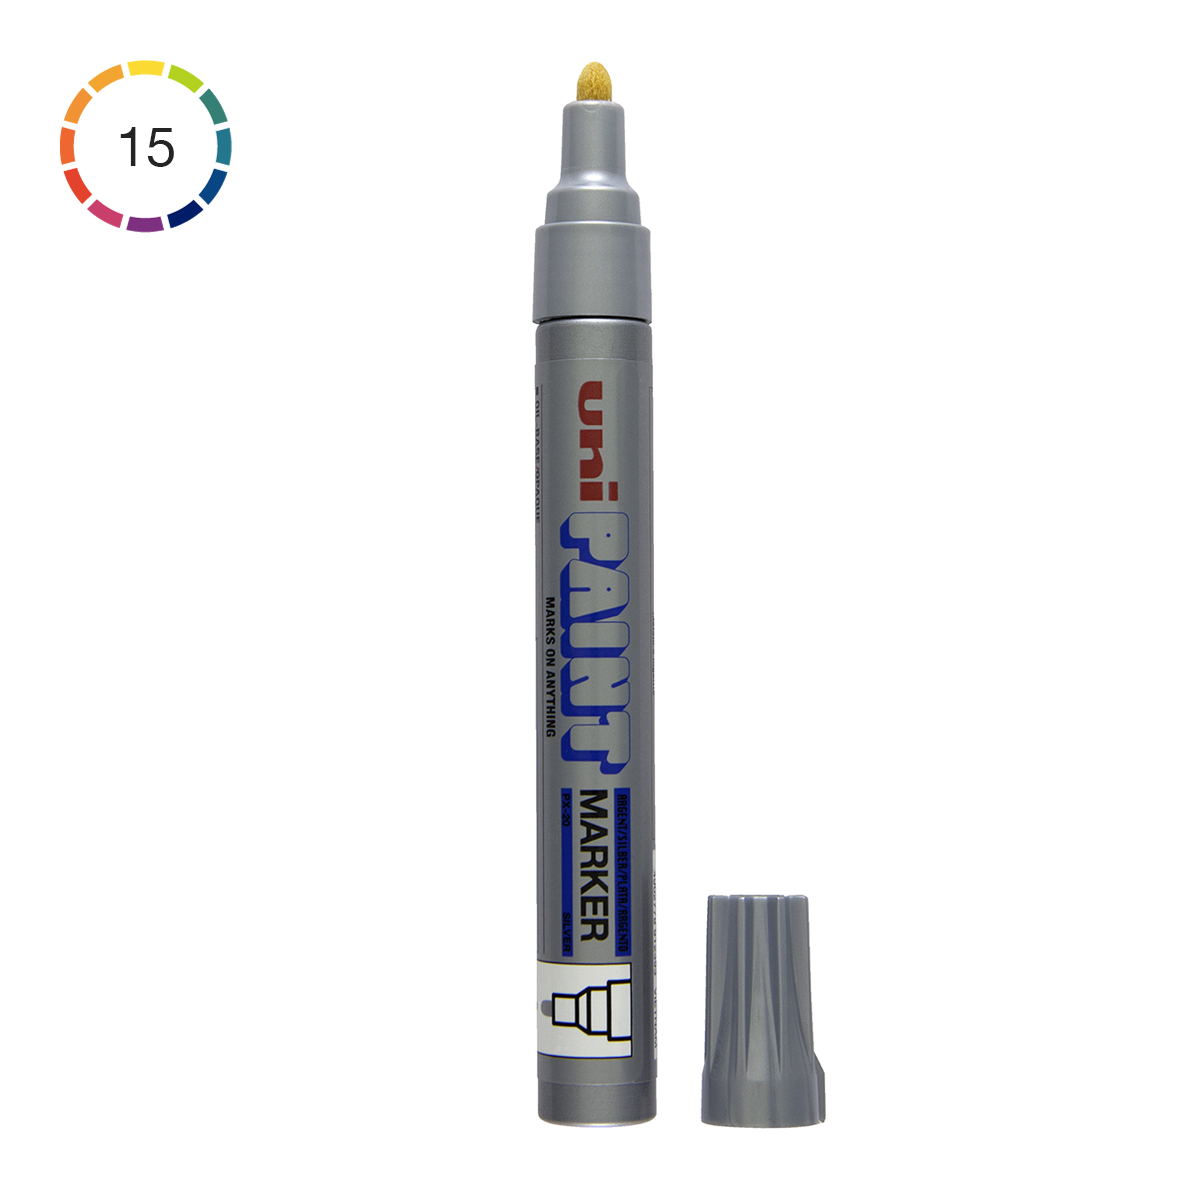 Uni paint marker px 20 medium 2 5 mm for Uni paint marker